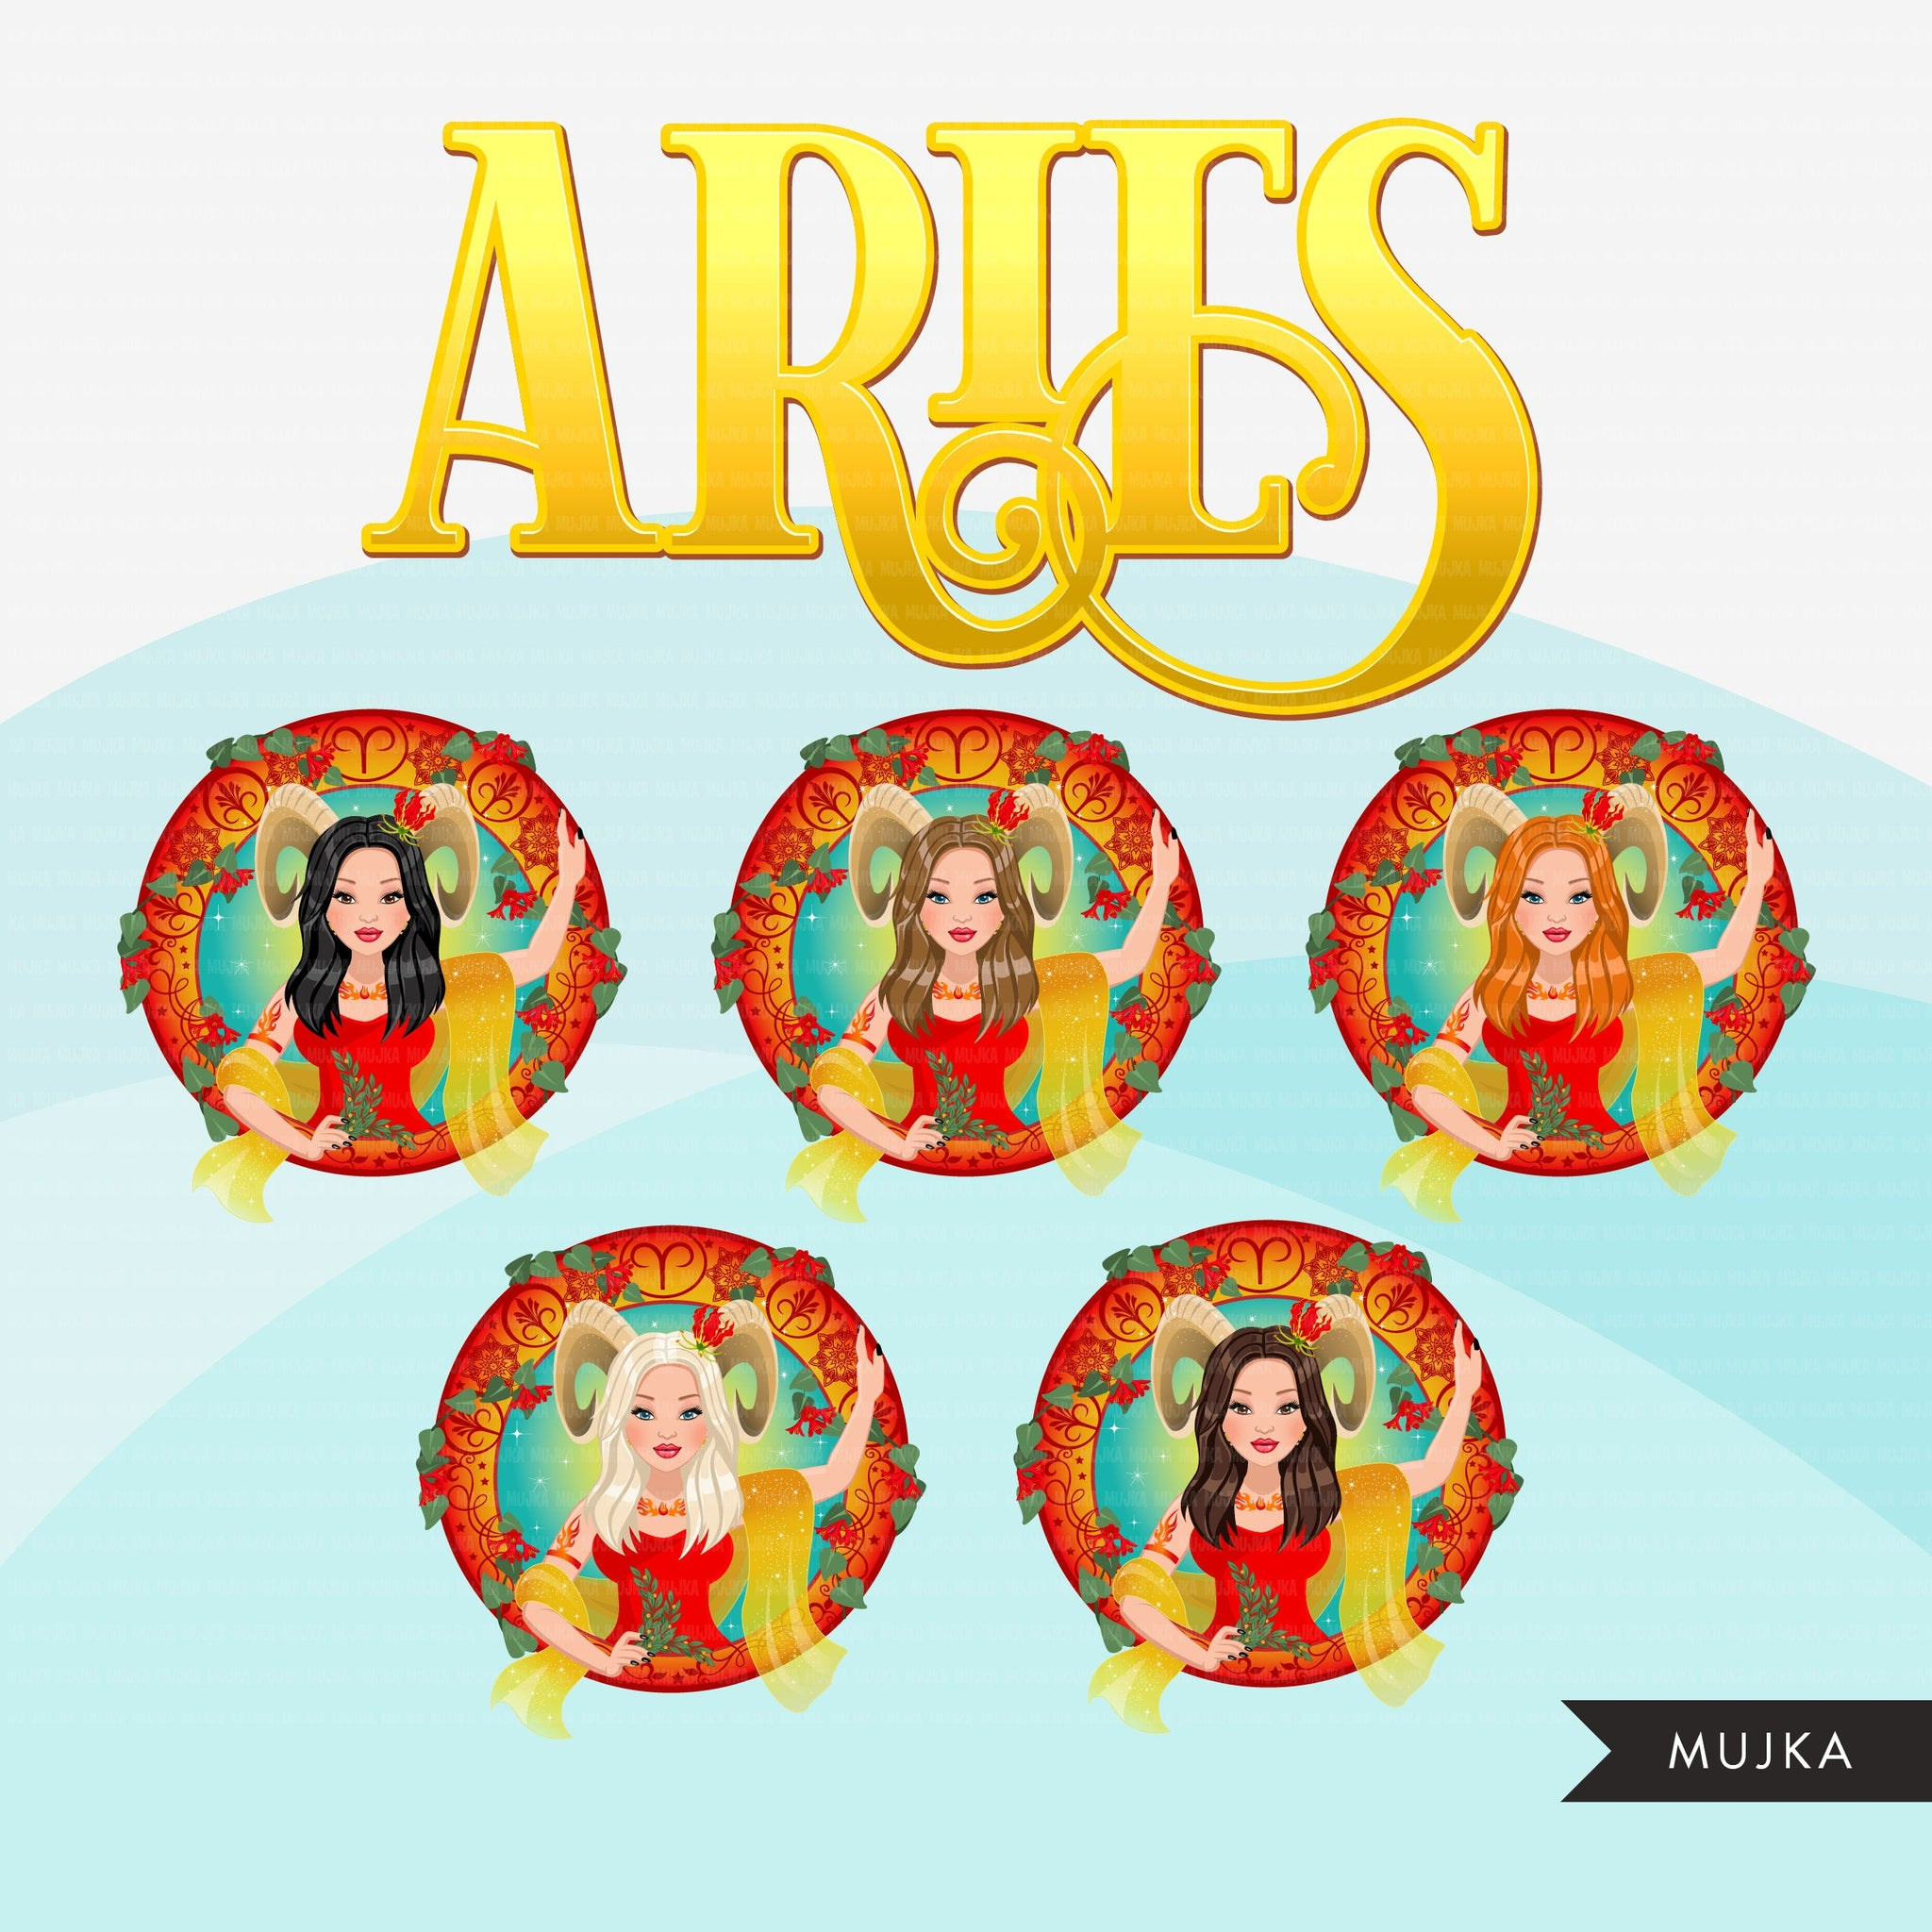 Zodiac Signs, ARIES Clipart BUNDLE, Astrology designs, Horoscope graphics, sublimation designs digital download,  Png for Cricut & Cameo